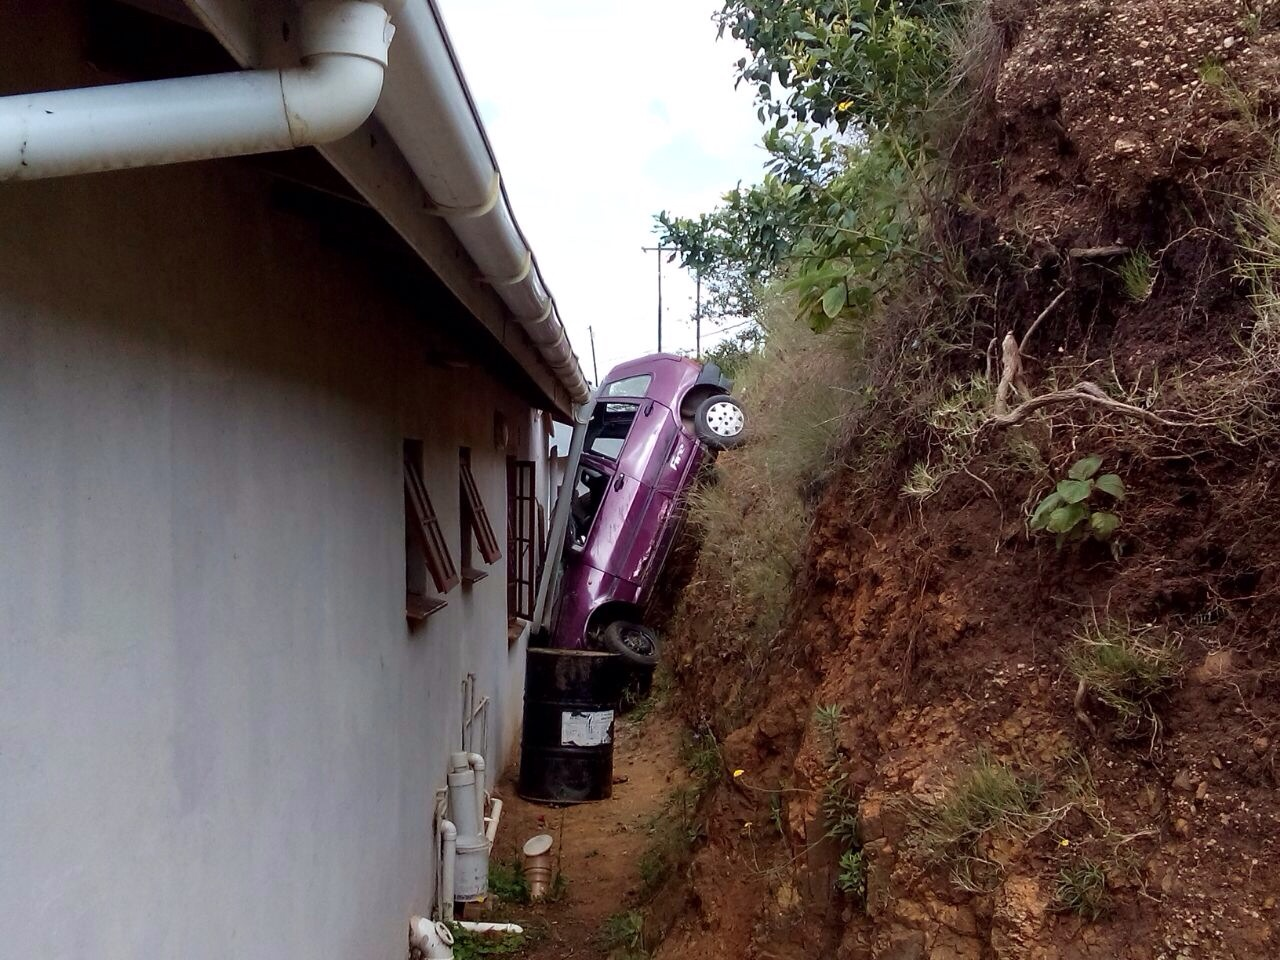 Man injured after vehicle lands between house and embankment